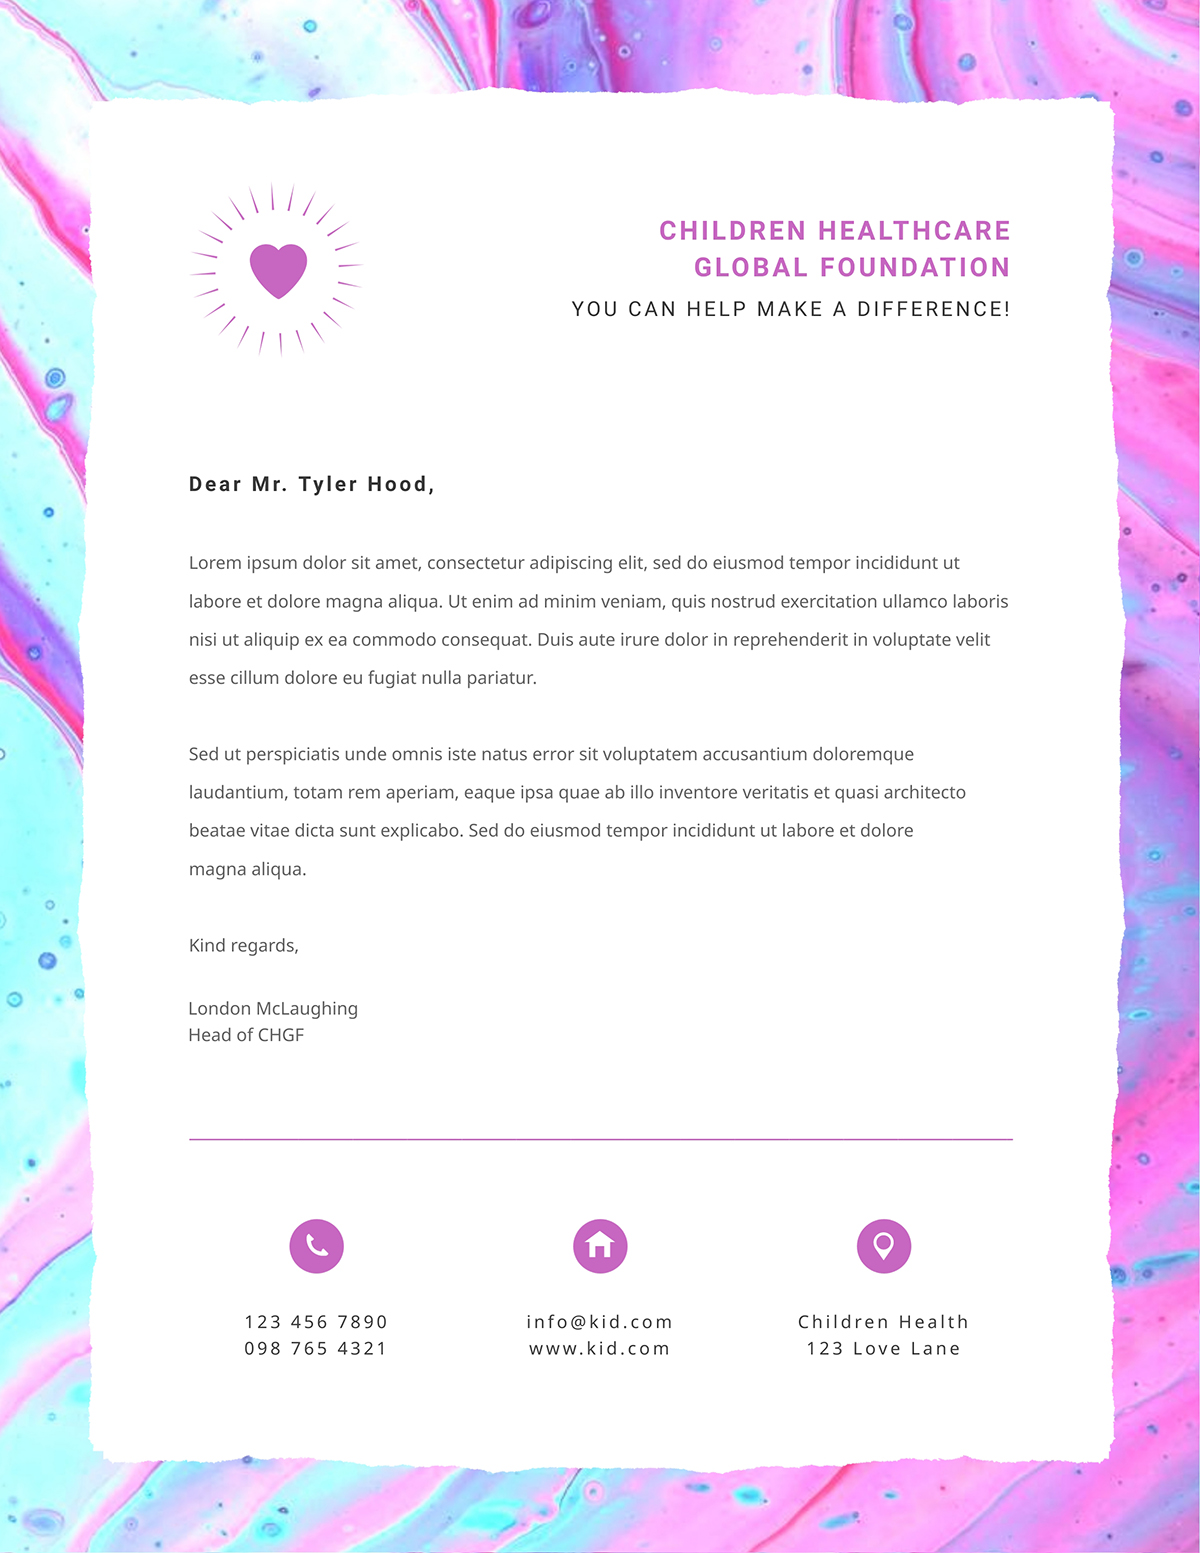 Blue and pink business letter template available in Visme.